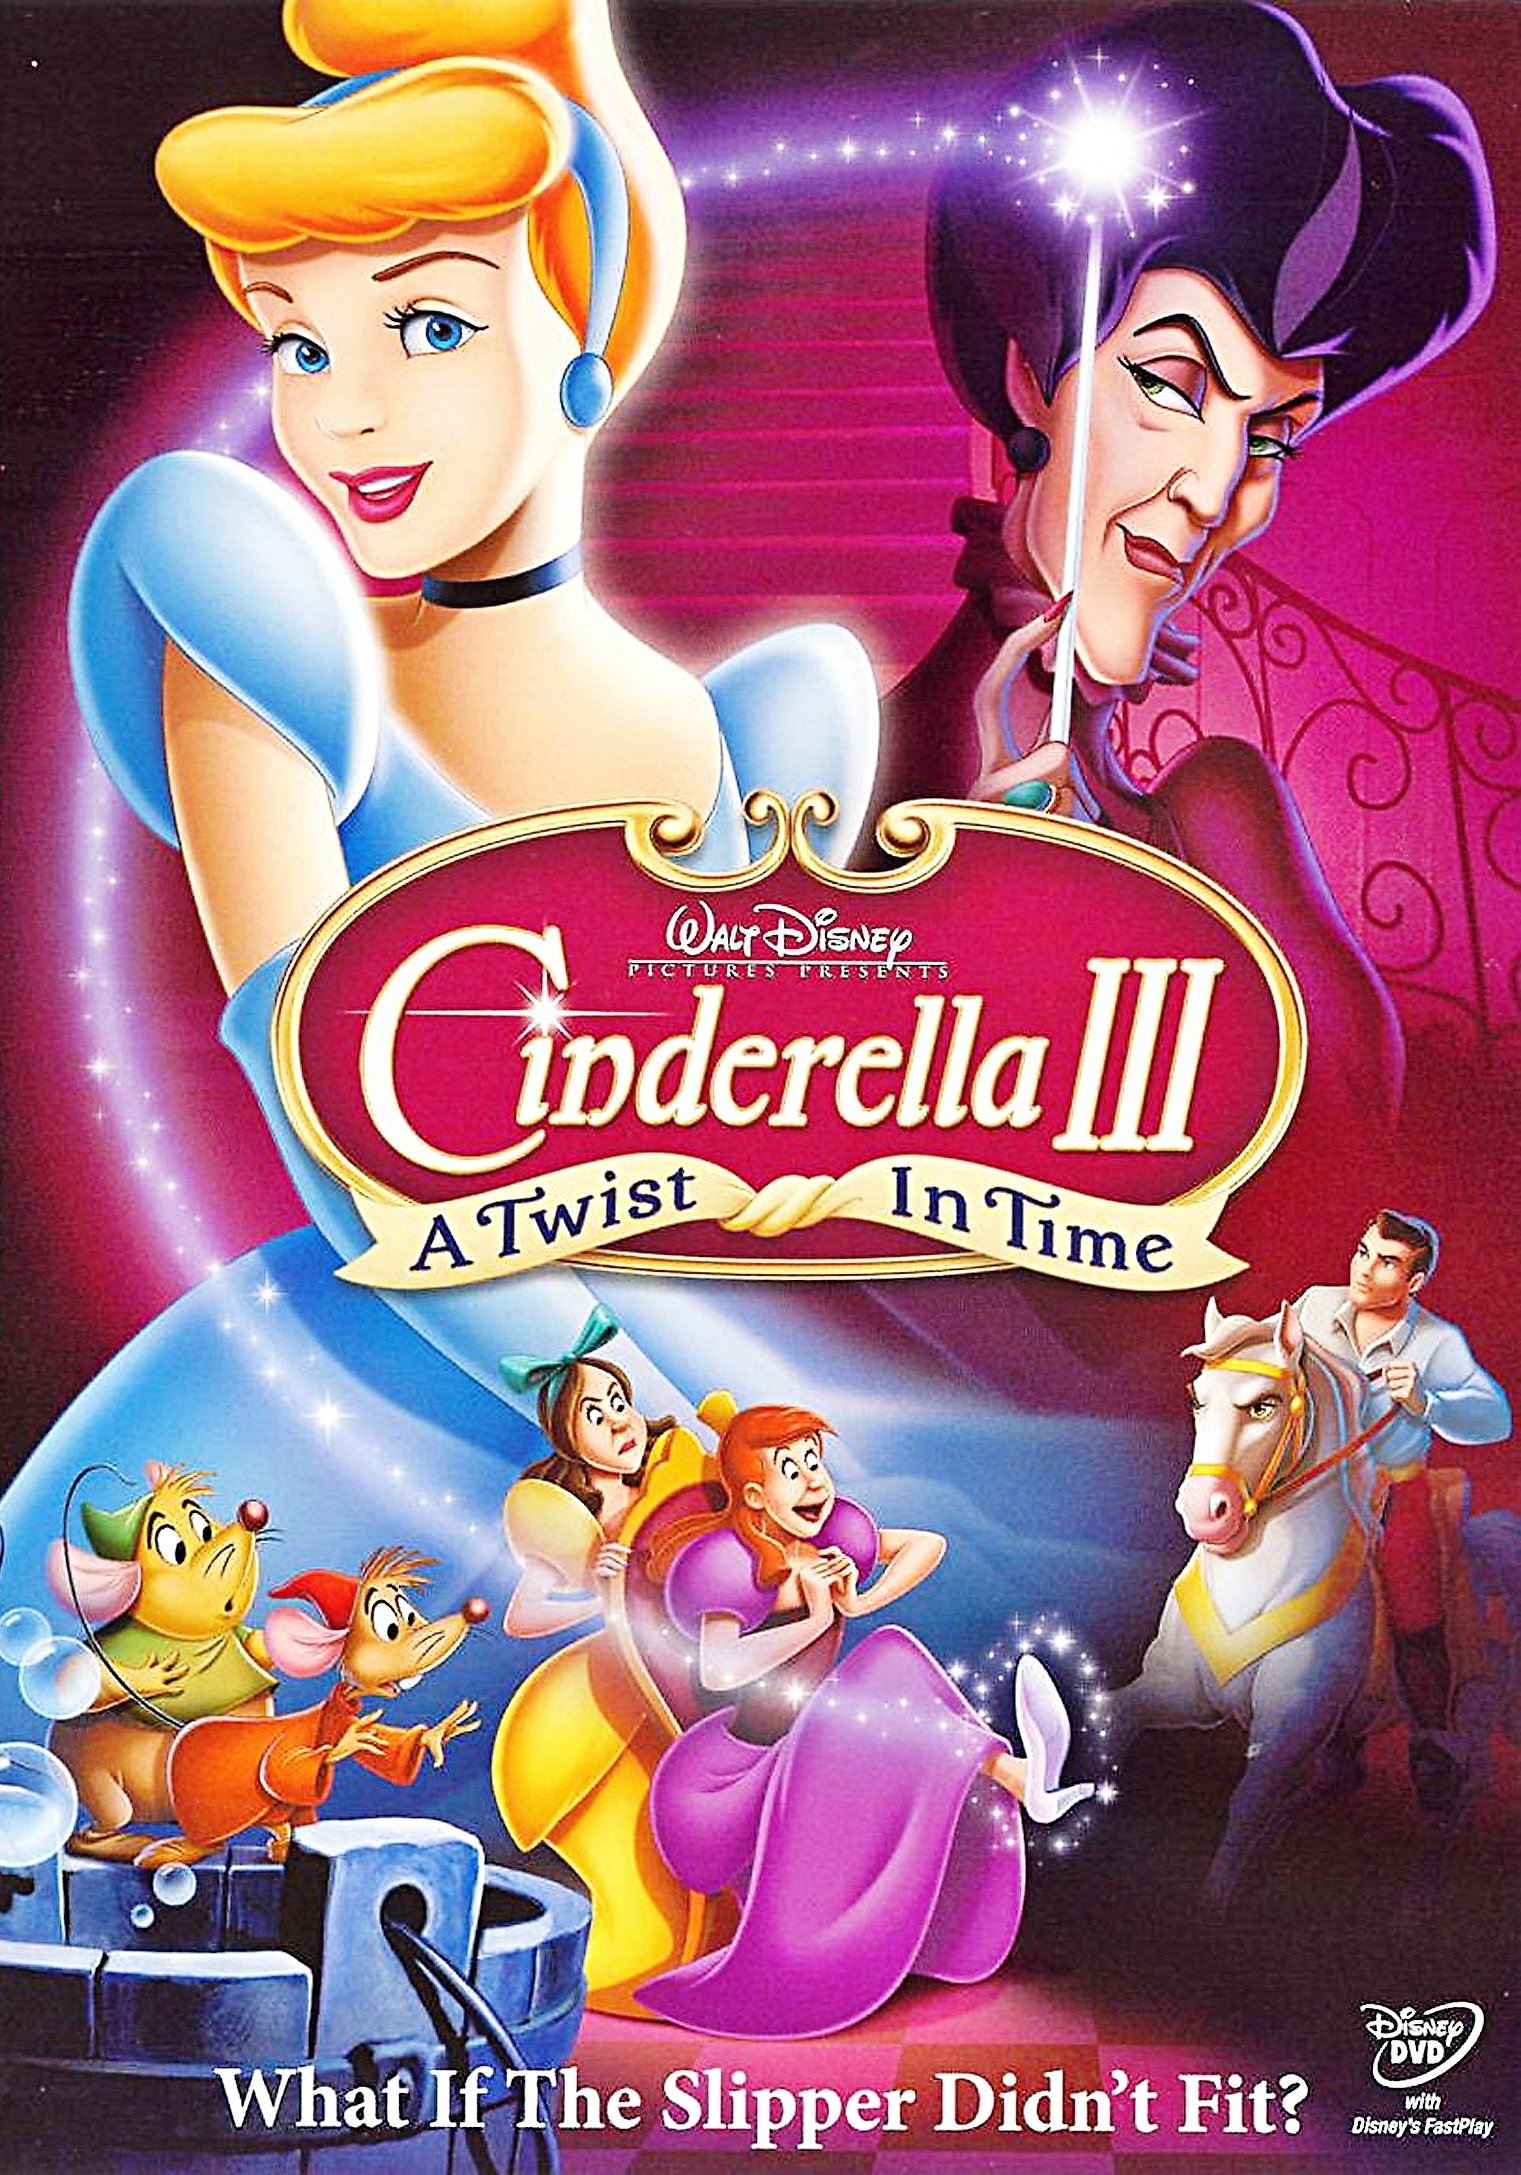 Cendrillon 3 - A Twist In Time Dvd Cover - Personnages De à Cendrillon 3 Disney